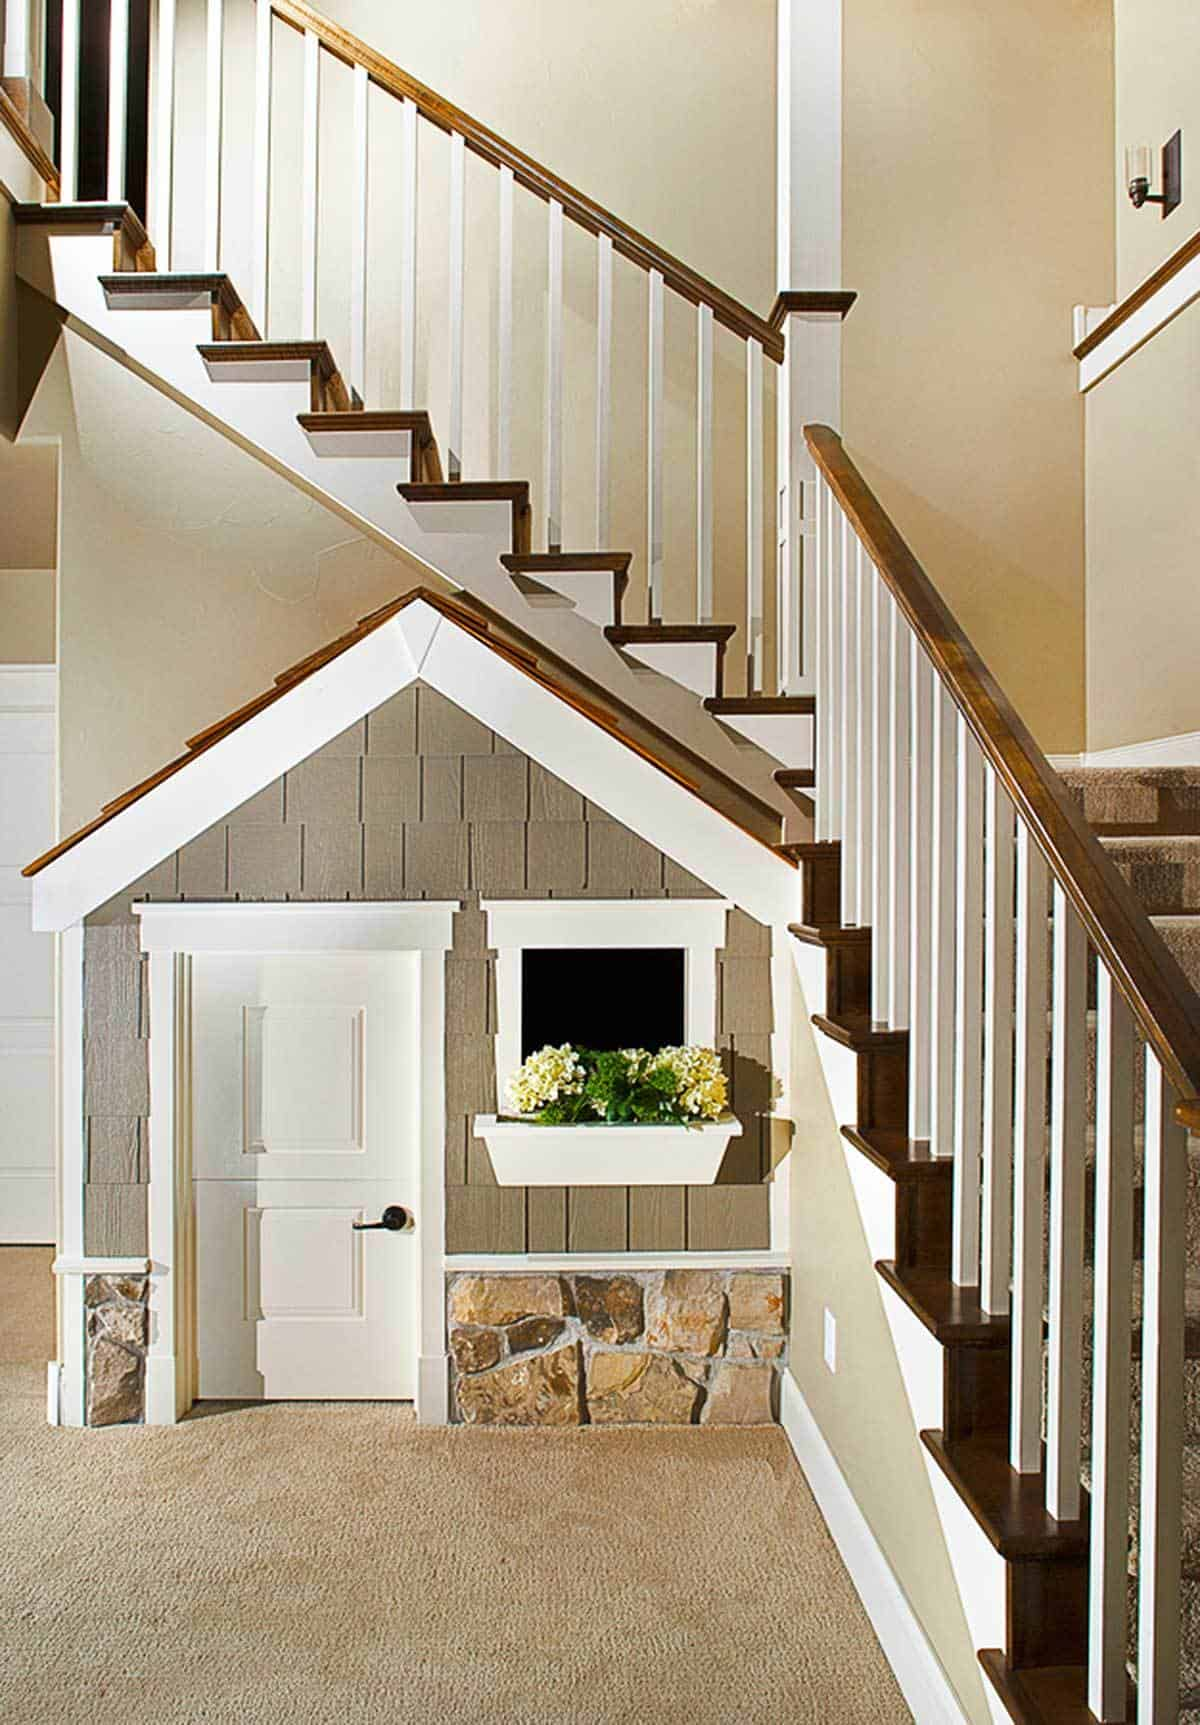 A traditional staircase on the foyer with a storage underneath designed like a little house.